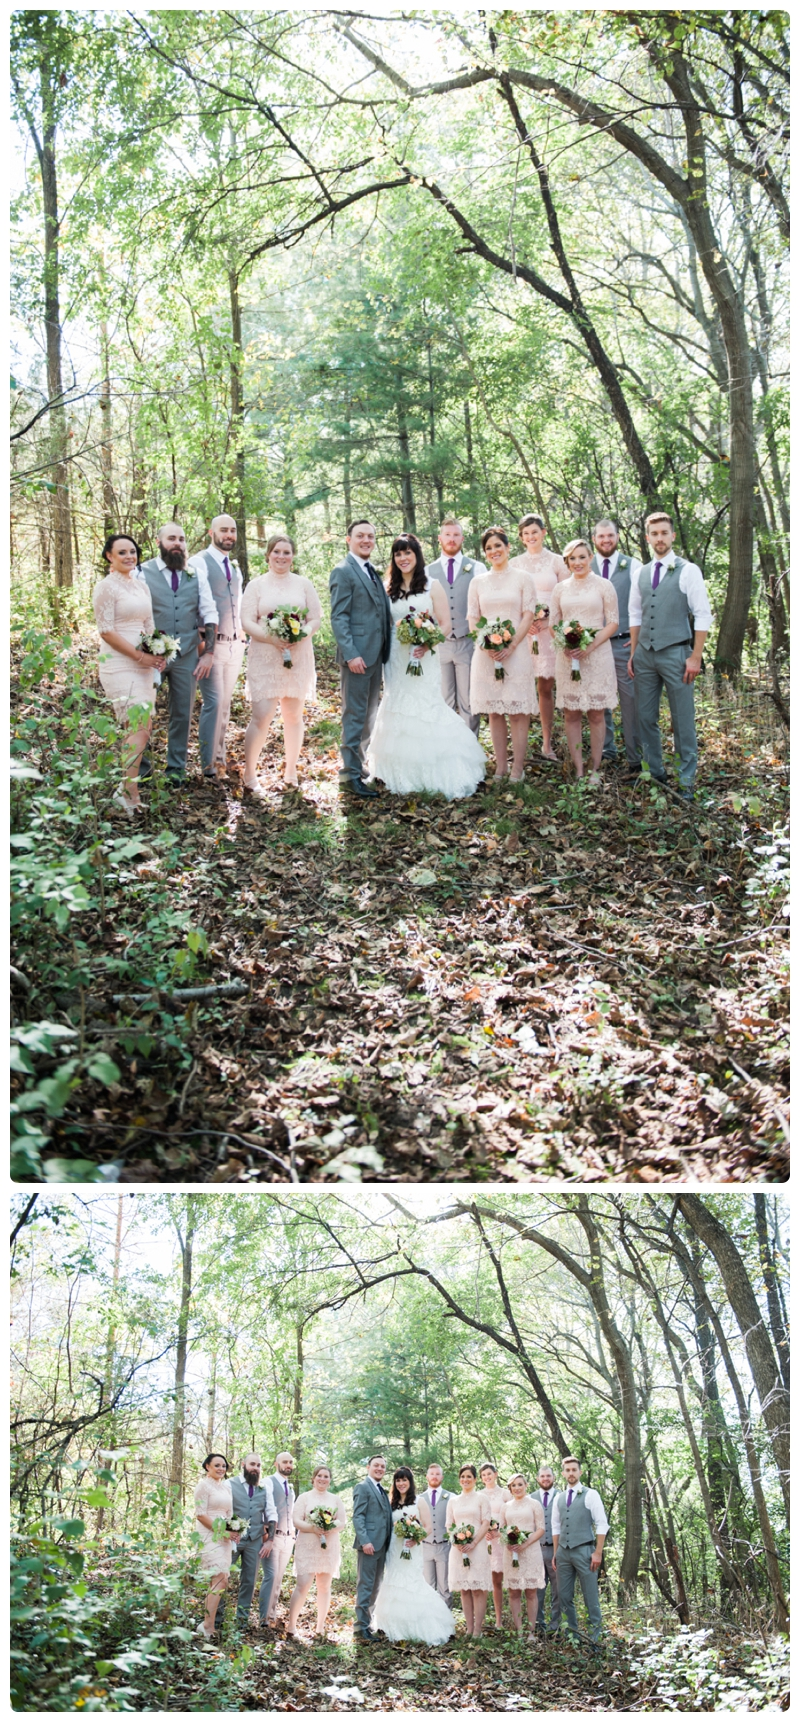 Backyard forest wedding in the Chicago suburbs by Rachael Foster Photography_0014.jpg